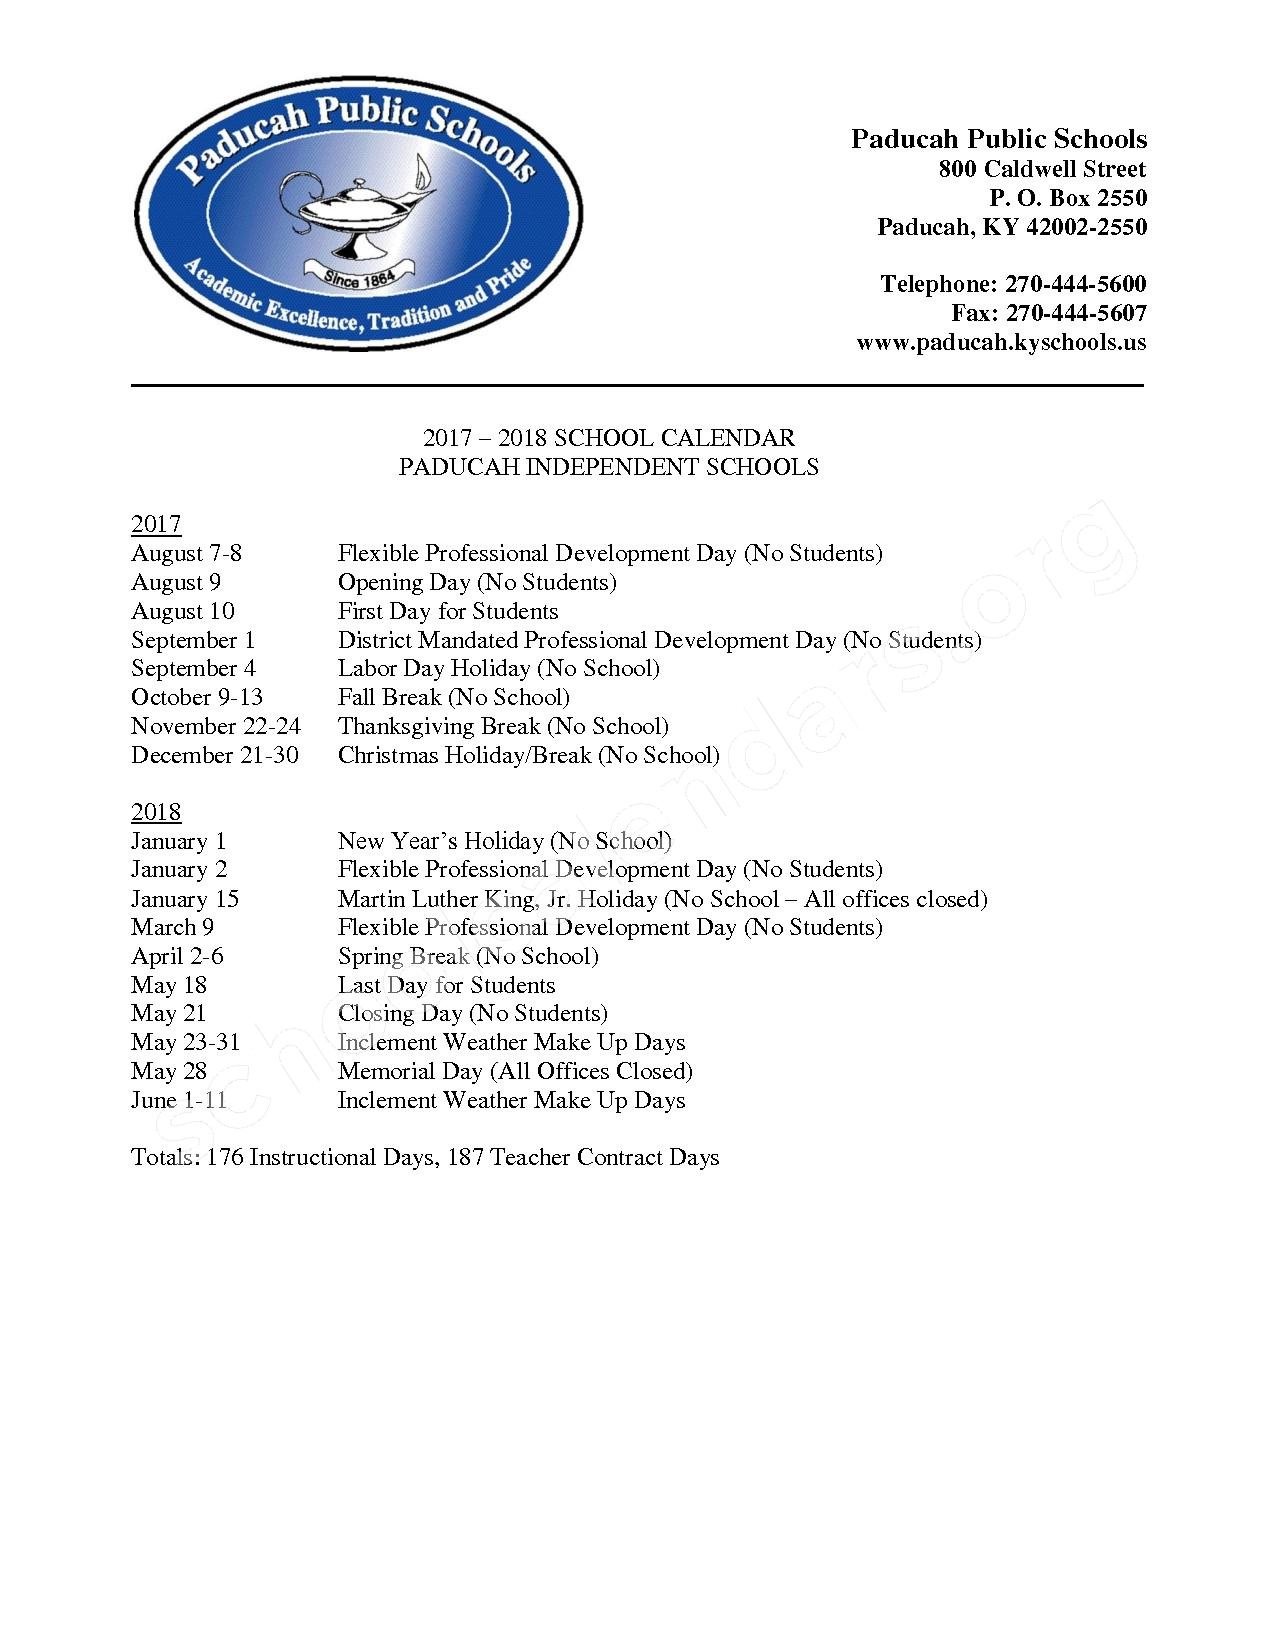 2017 - 2018 School Calendar – Paducah Independent School District – page 1